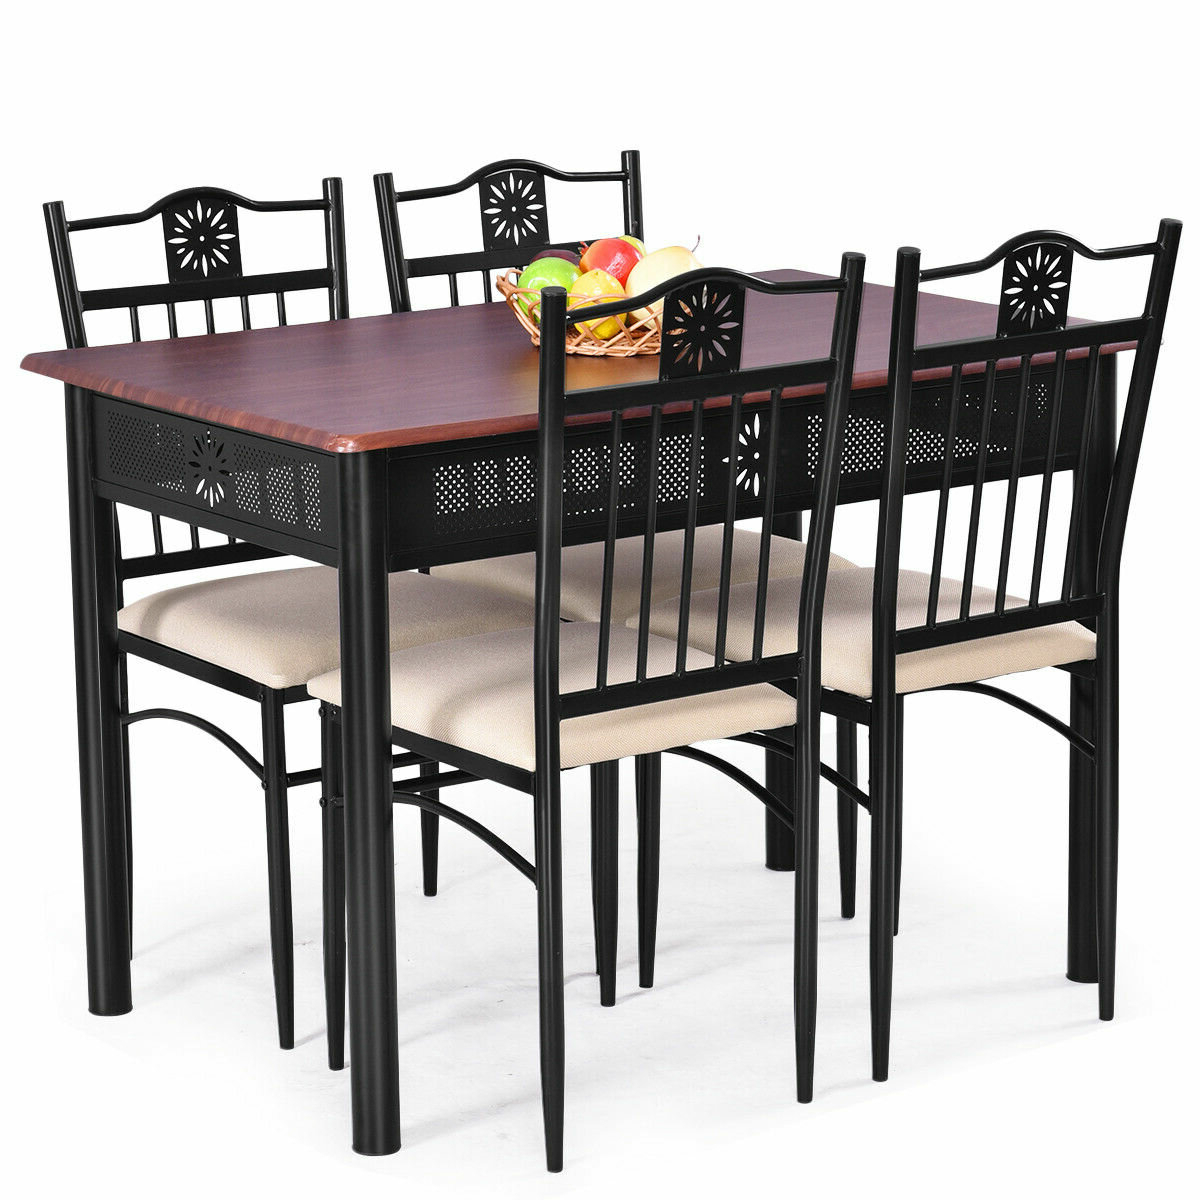 Miskell 3 Piece Dining Sets For Recent Winston Porter Ganya 5 Piece Dining Set & Reviews (View 11 of 25)